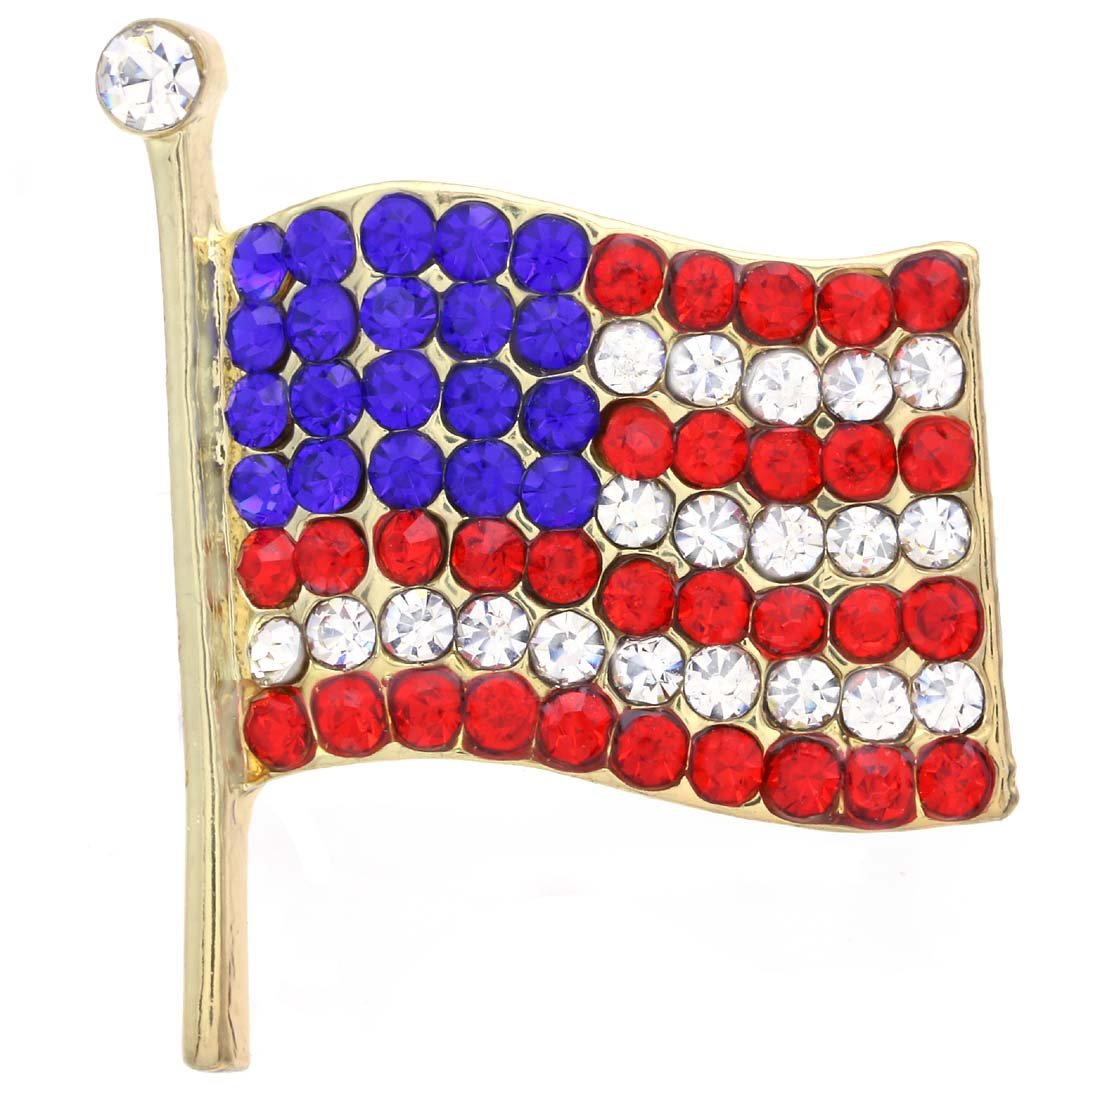 Soulbreezecollection American Flag Star USA Pin Brooch 4th of July Independence Day Jewelry (Small-GLD)